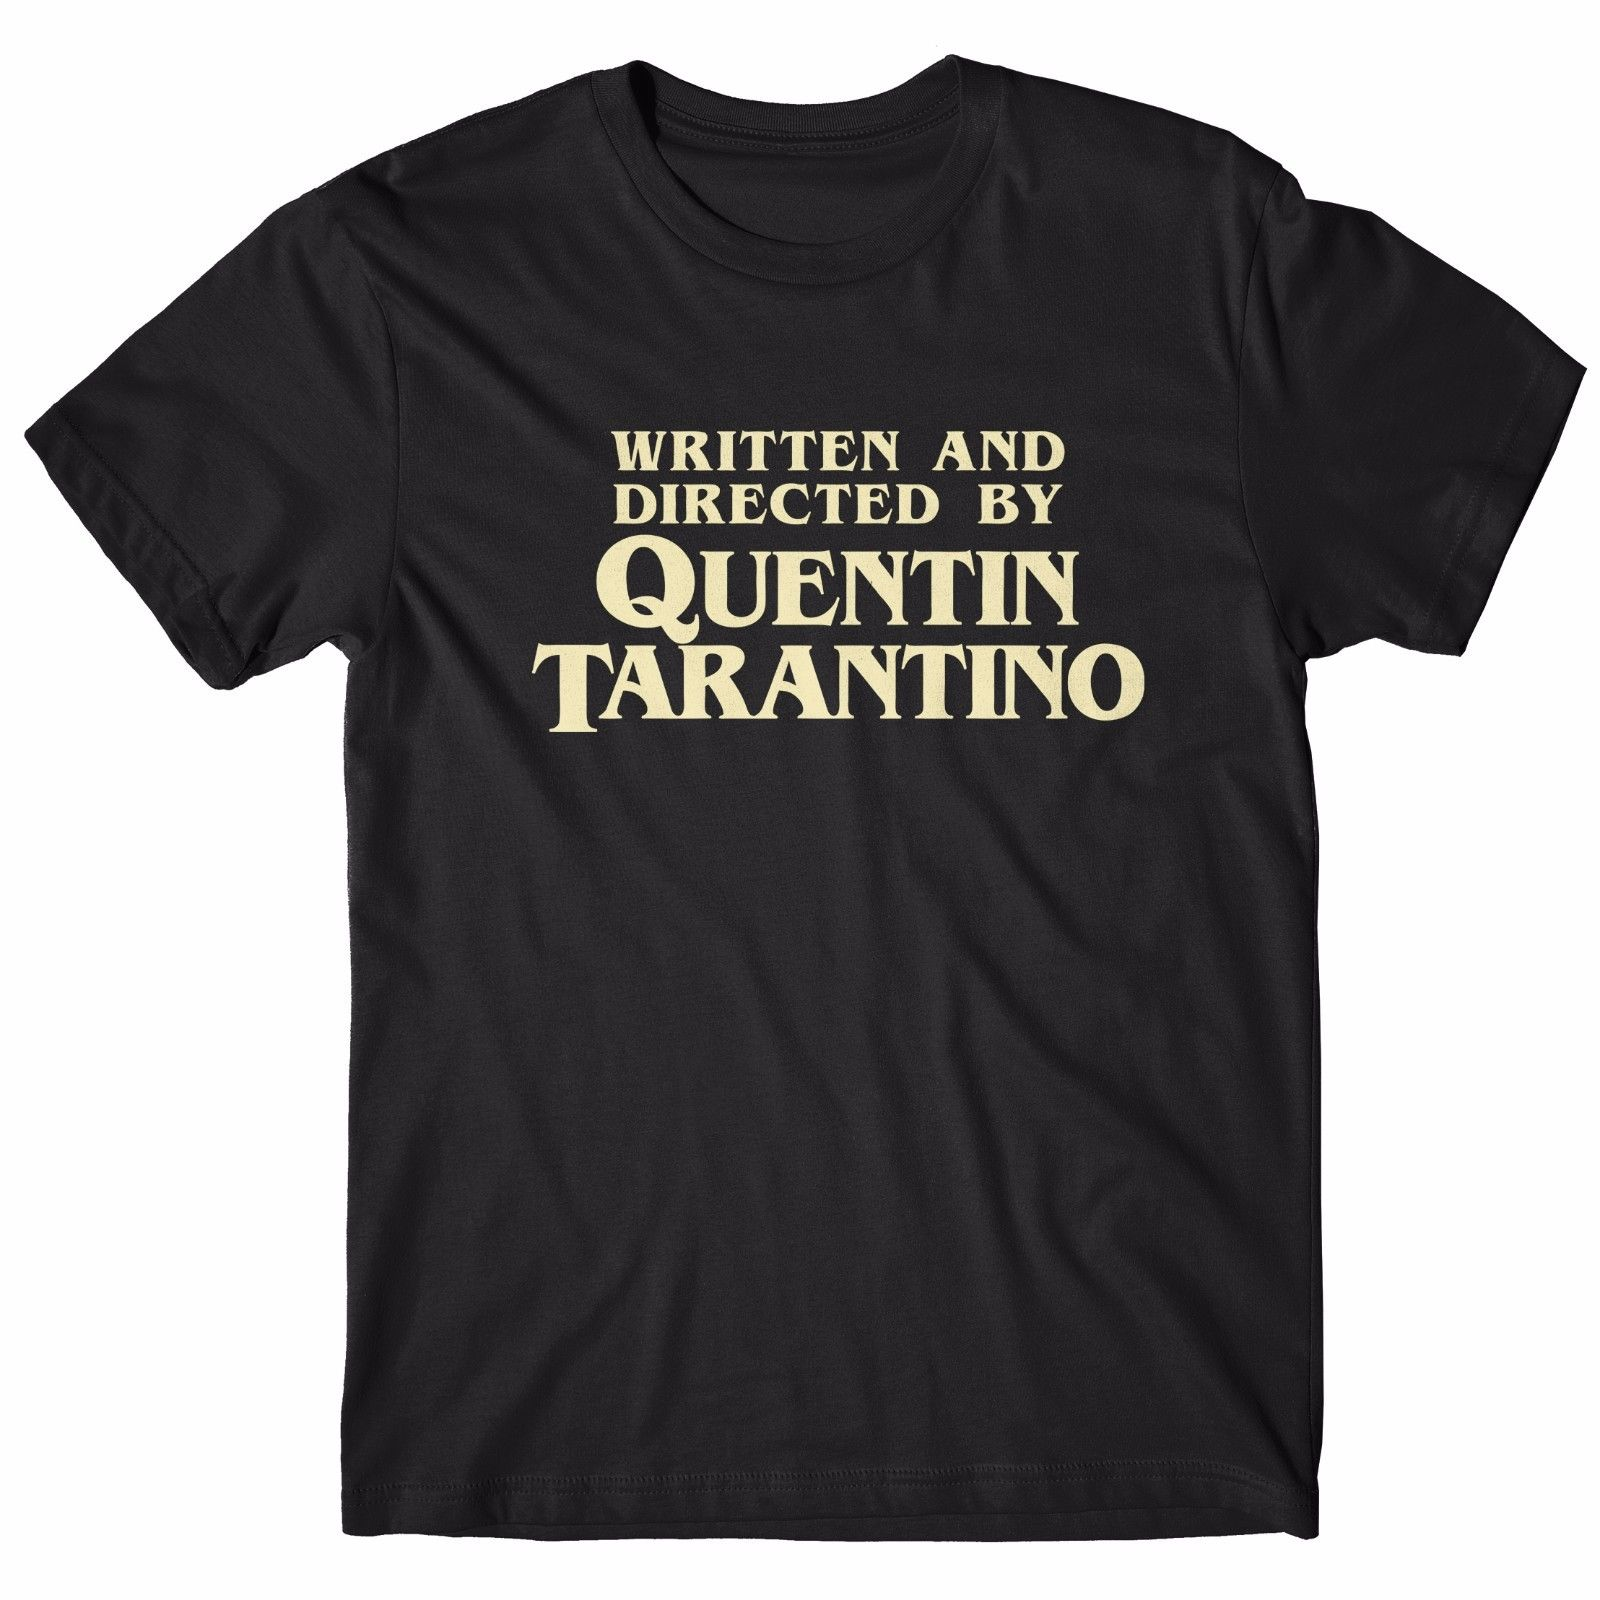 t-shirt-uomo-written-and-directed-by-font-b-tarantino-b-font--maglietta-100-cotone-nero